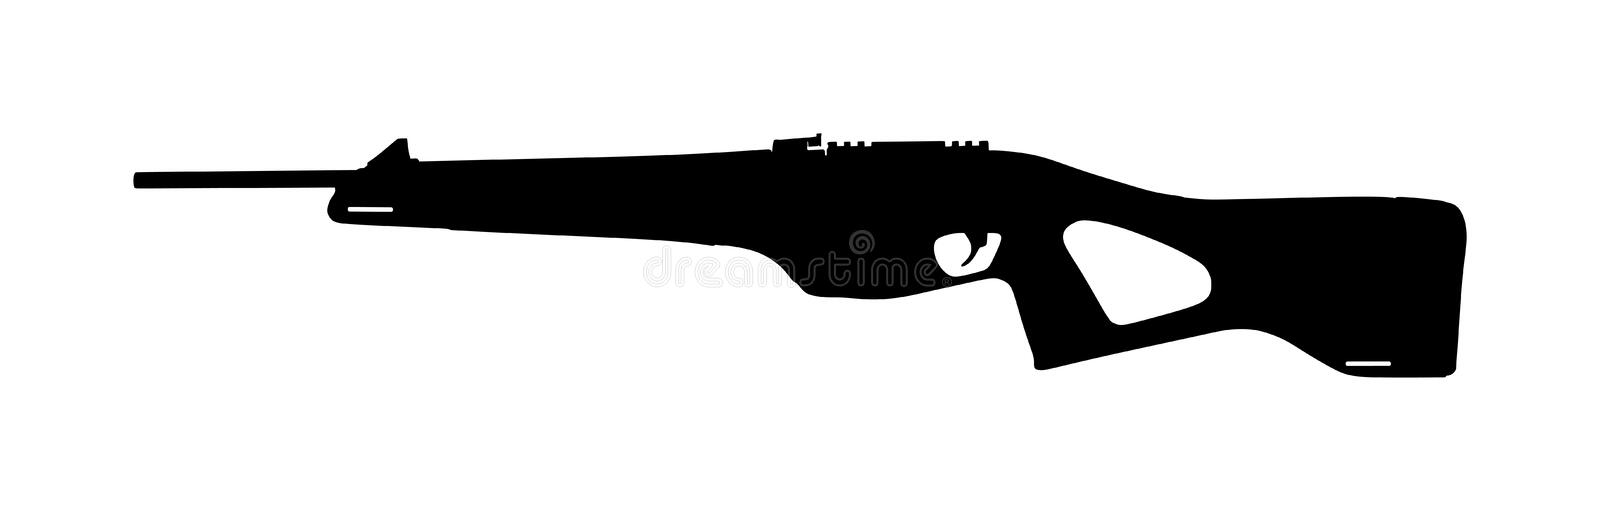 Rifle  silhouette isolated on white. Hunting rifle silhouette symbol. Semi automatic carbine. Army and police weapon. royalty free stock photos